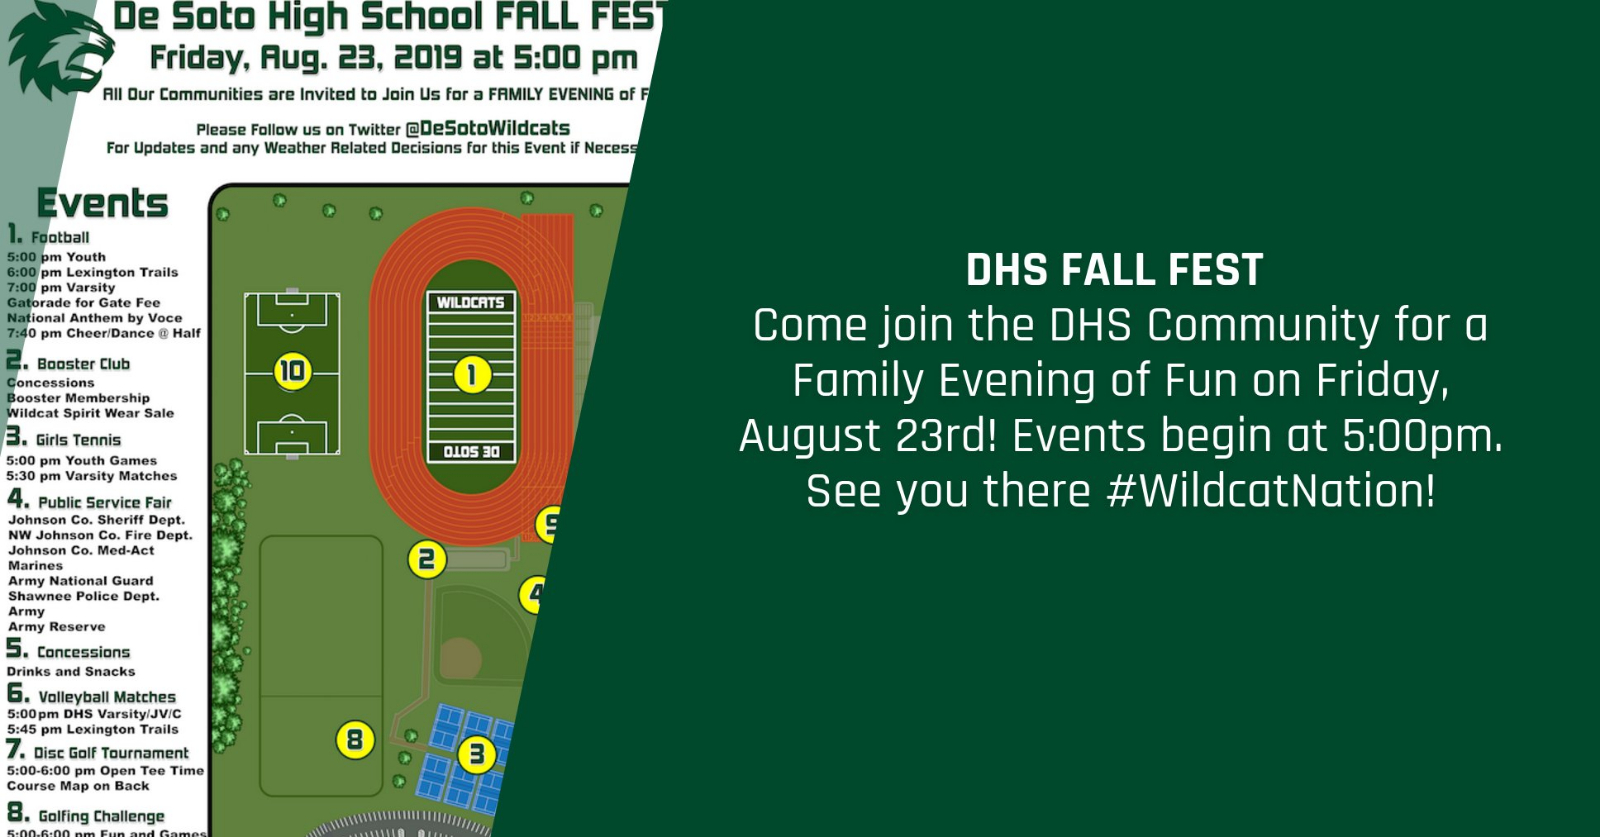 DHS Fall Fest is set for FRIDAY, AUG 23